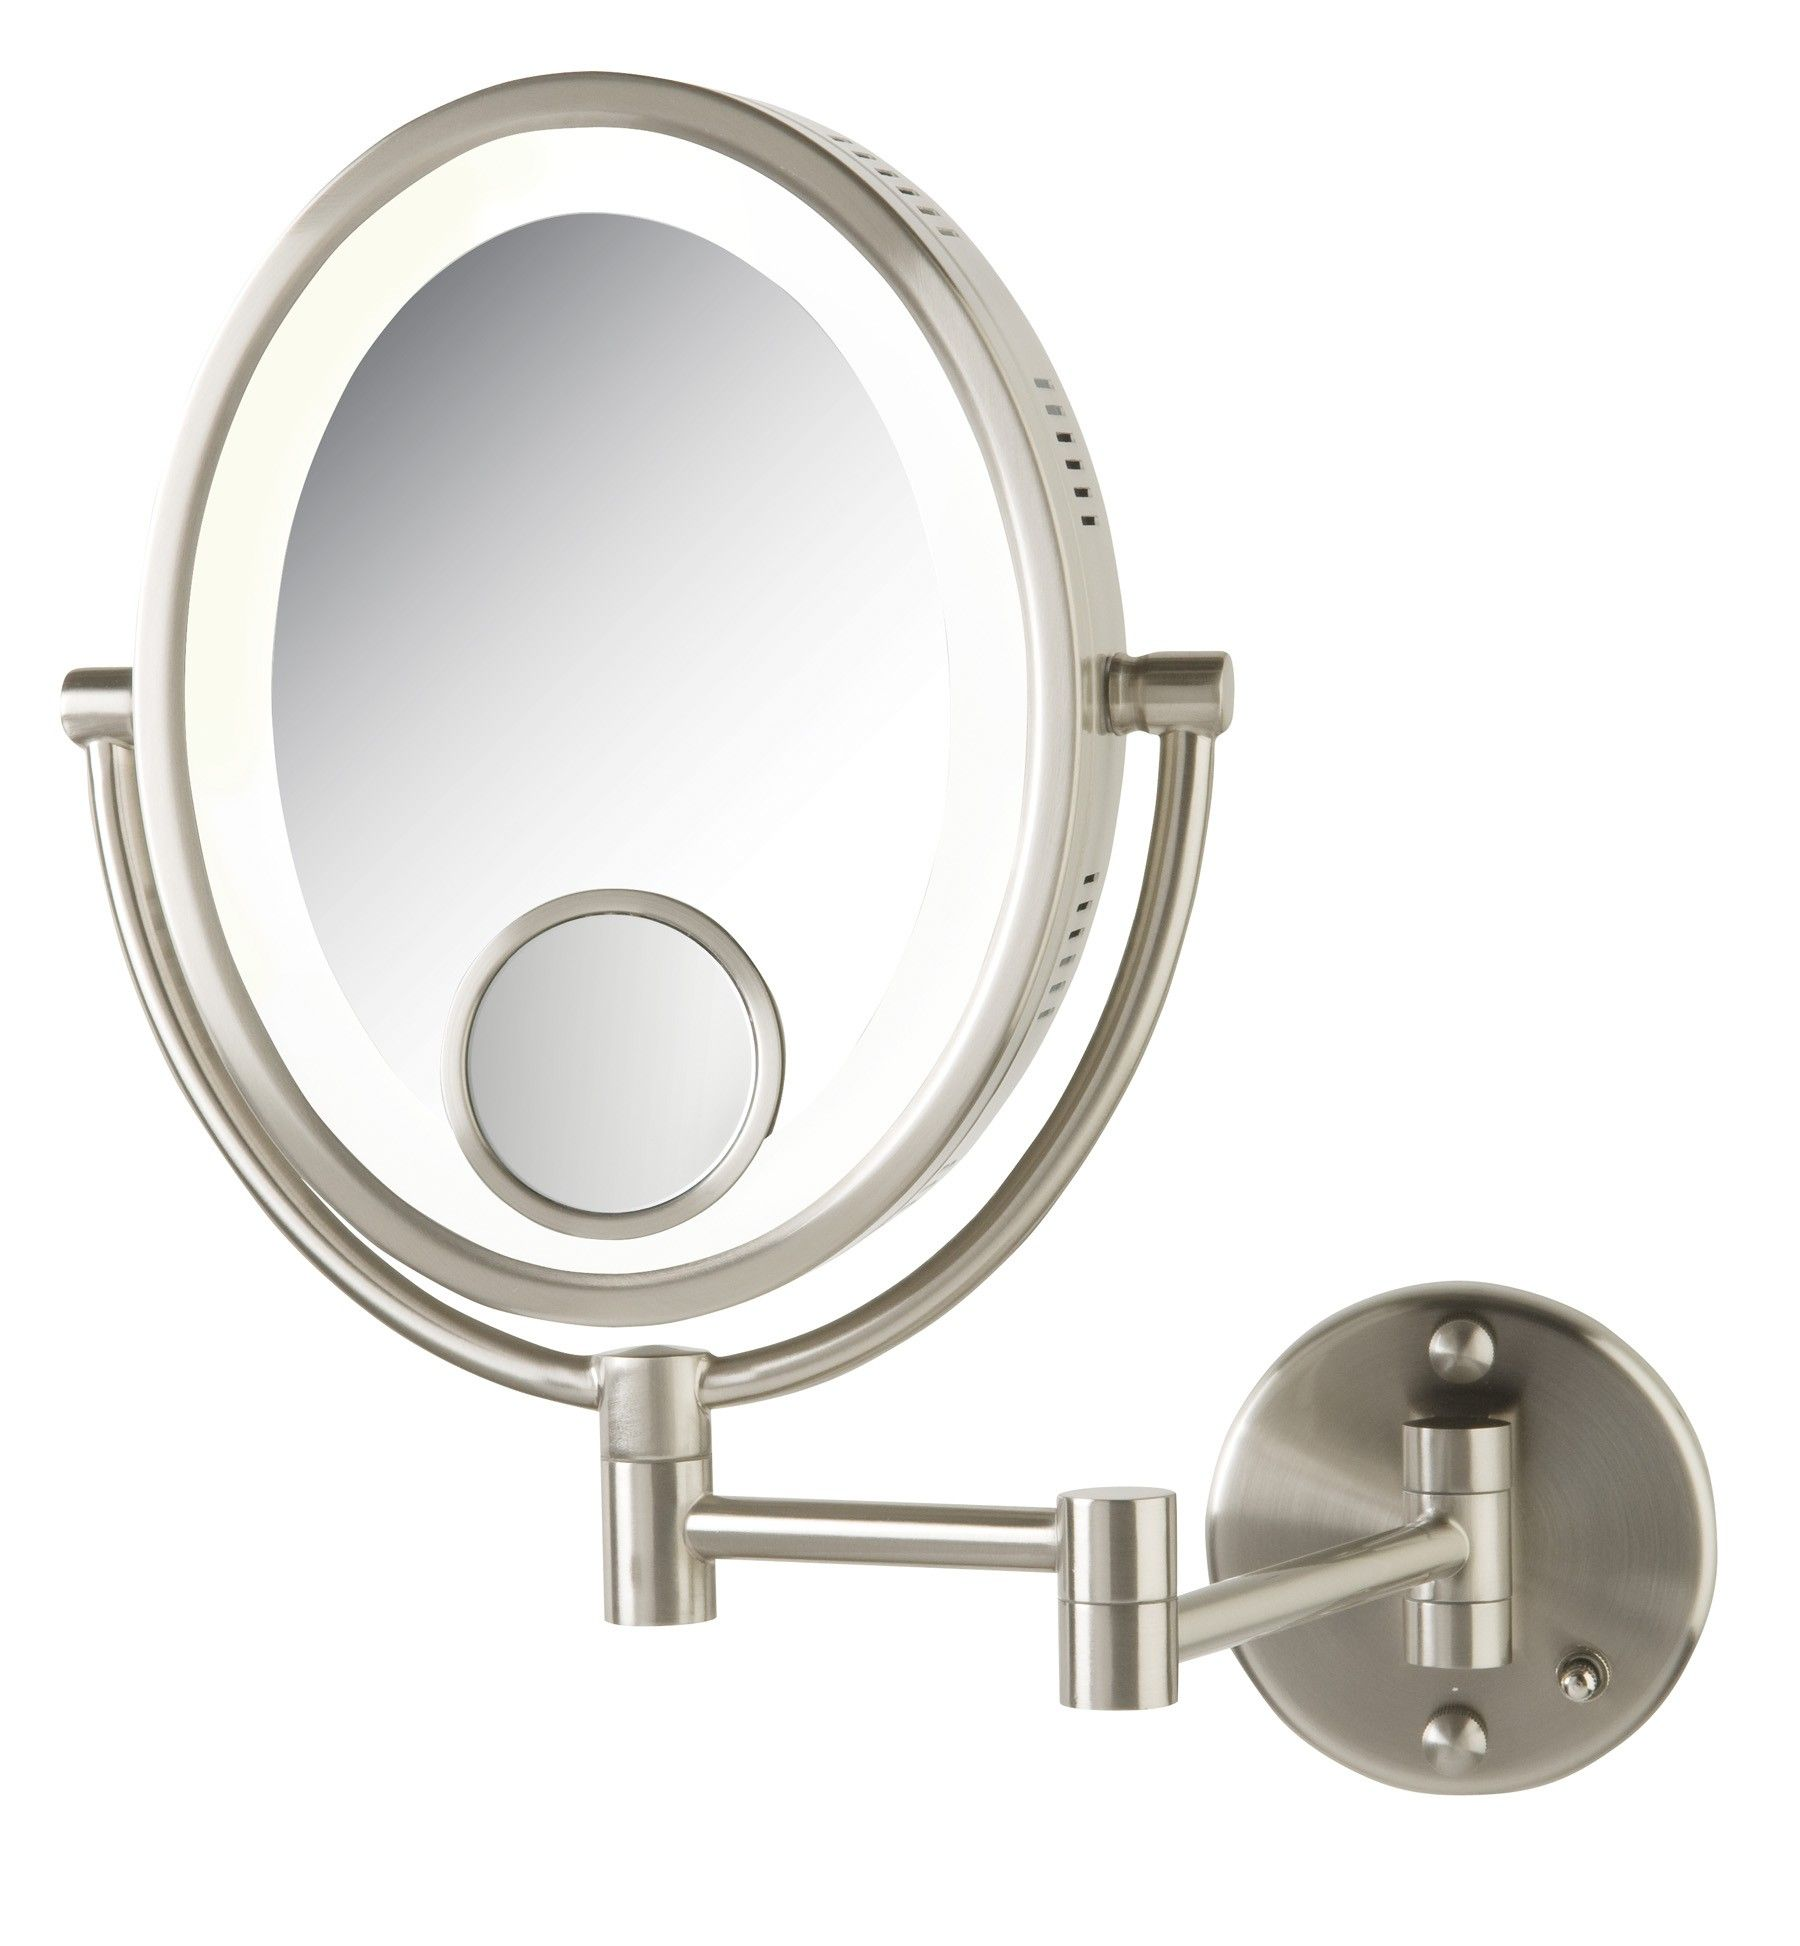 Halo Swinging Lighted Oval Vanity Mirror with Insert